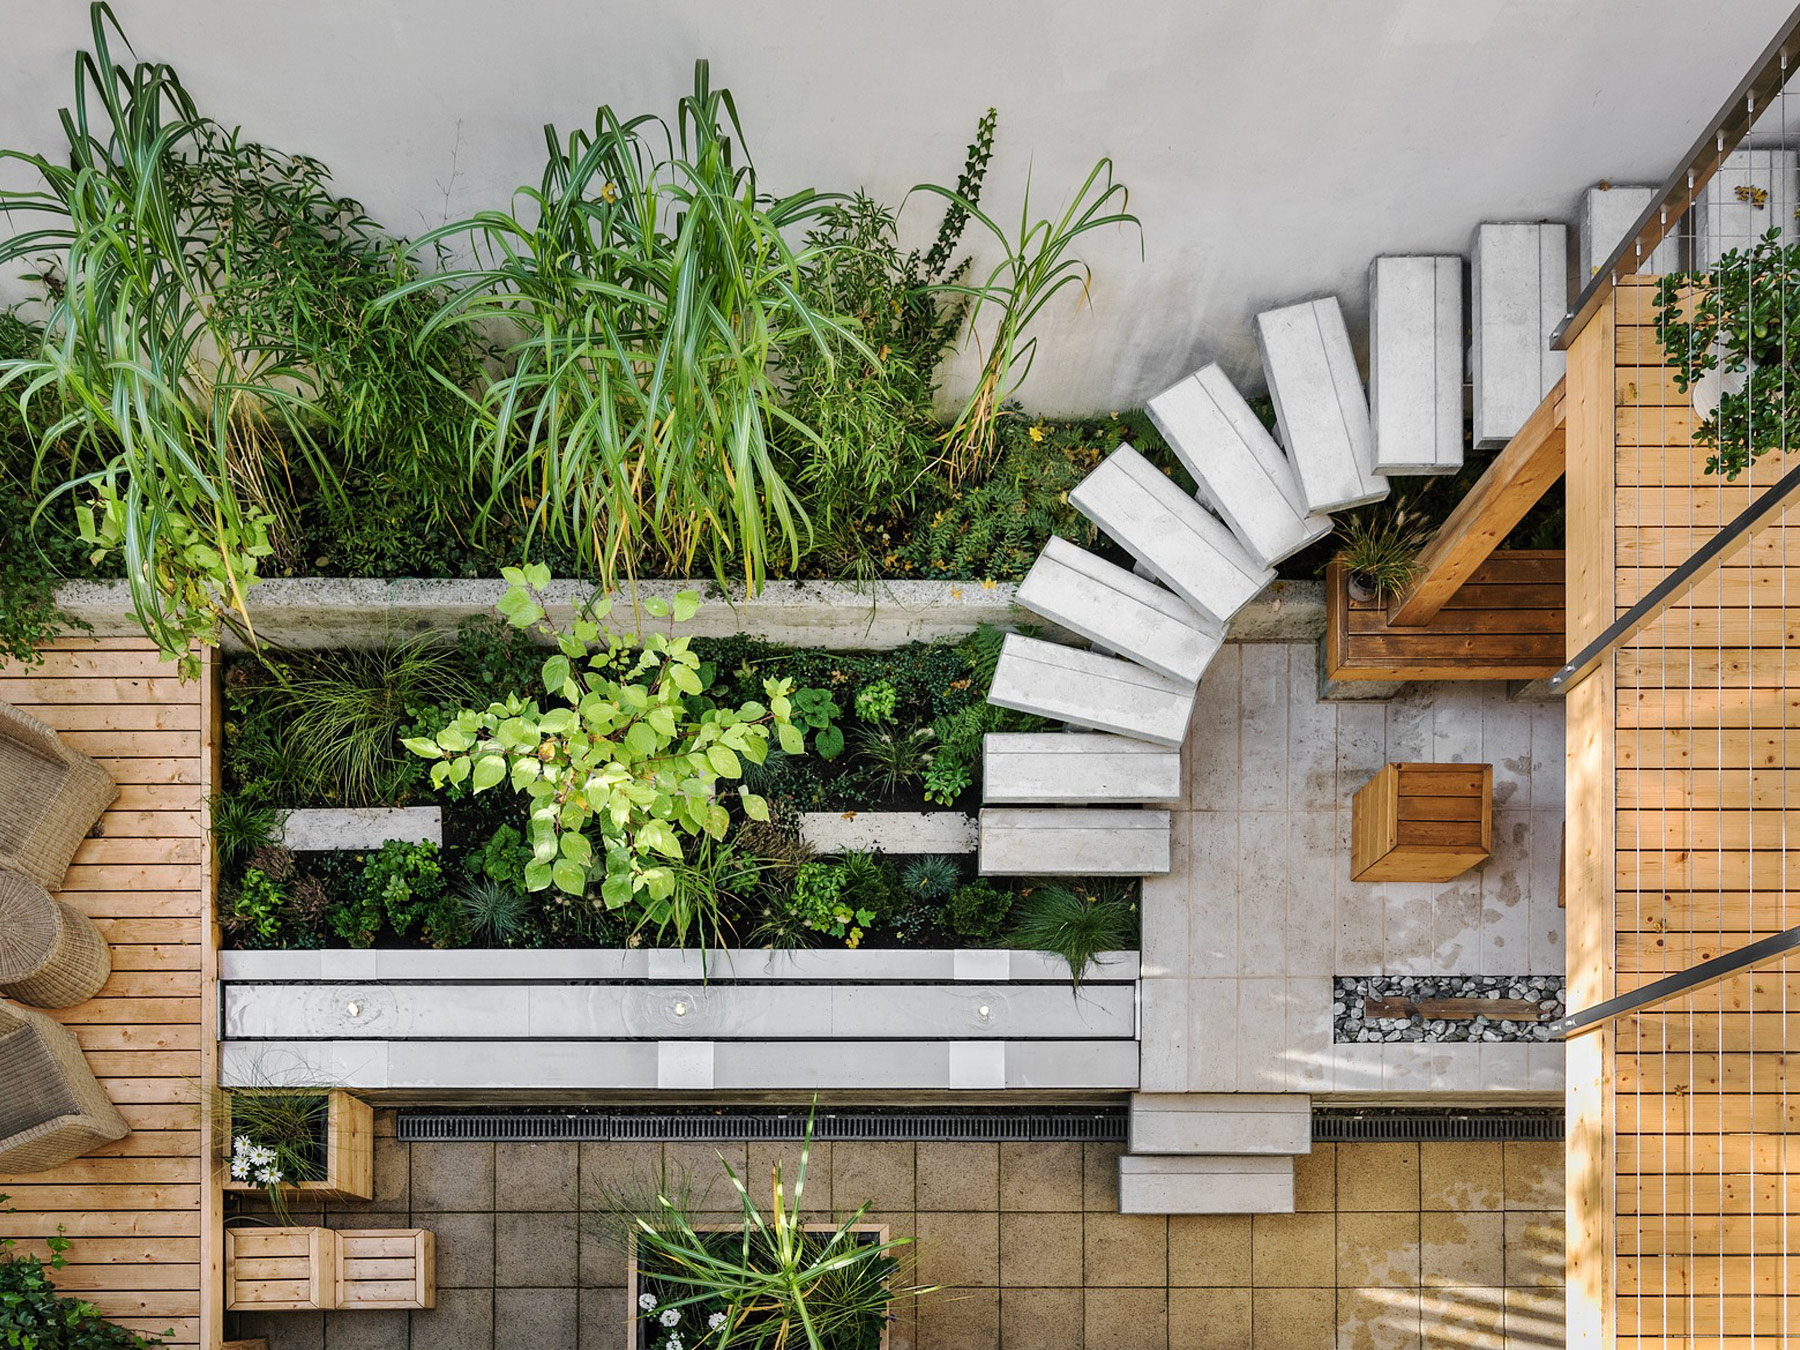 Overhead view of a patio space with greenery, brushed concrete, and wood.